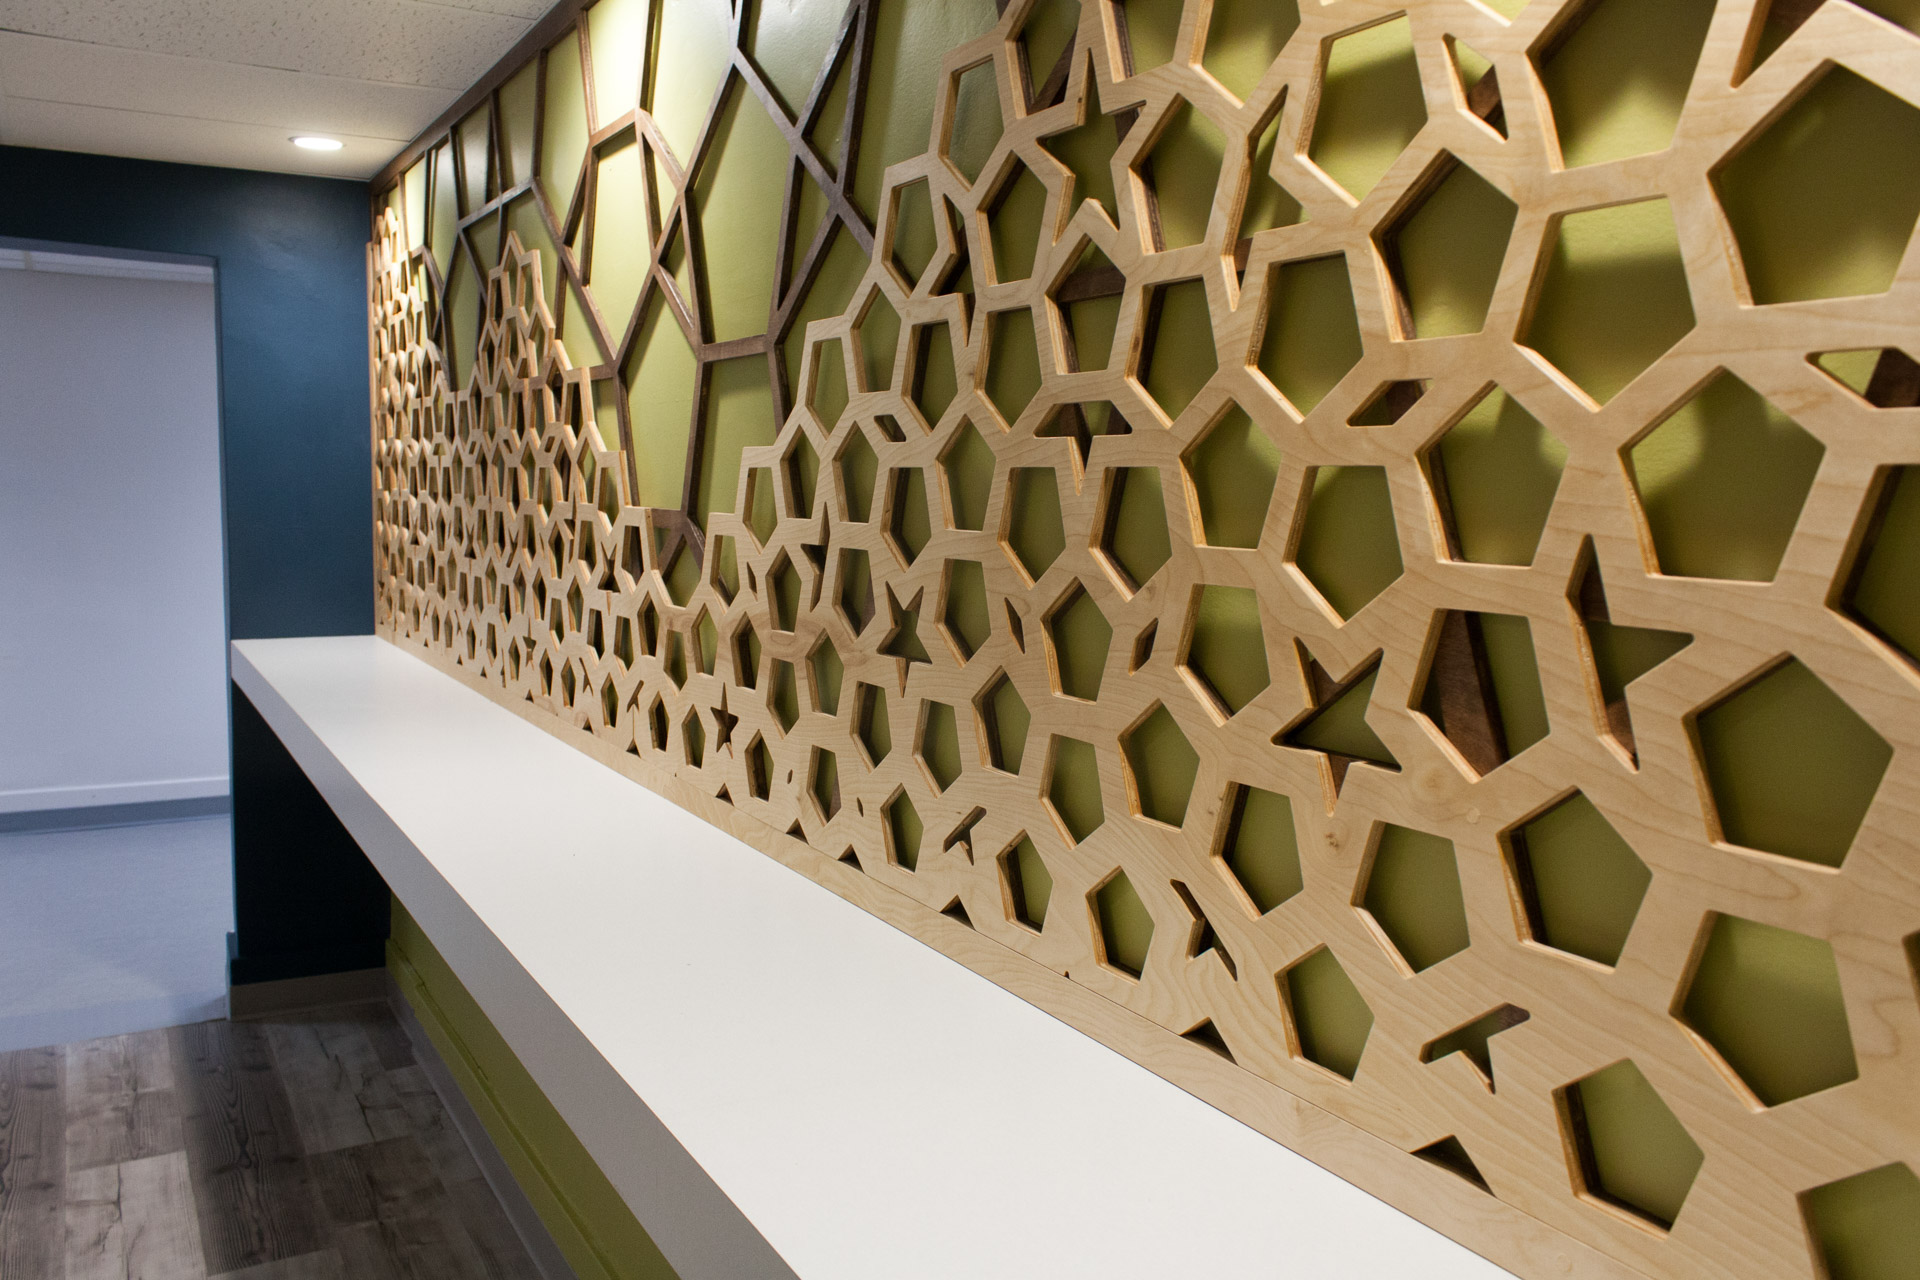 Geometric Wood Mural CNC cut